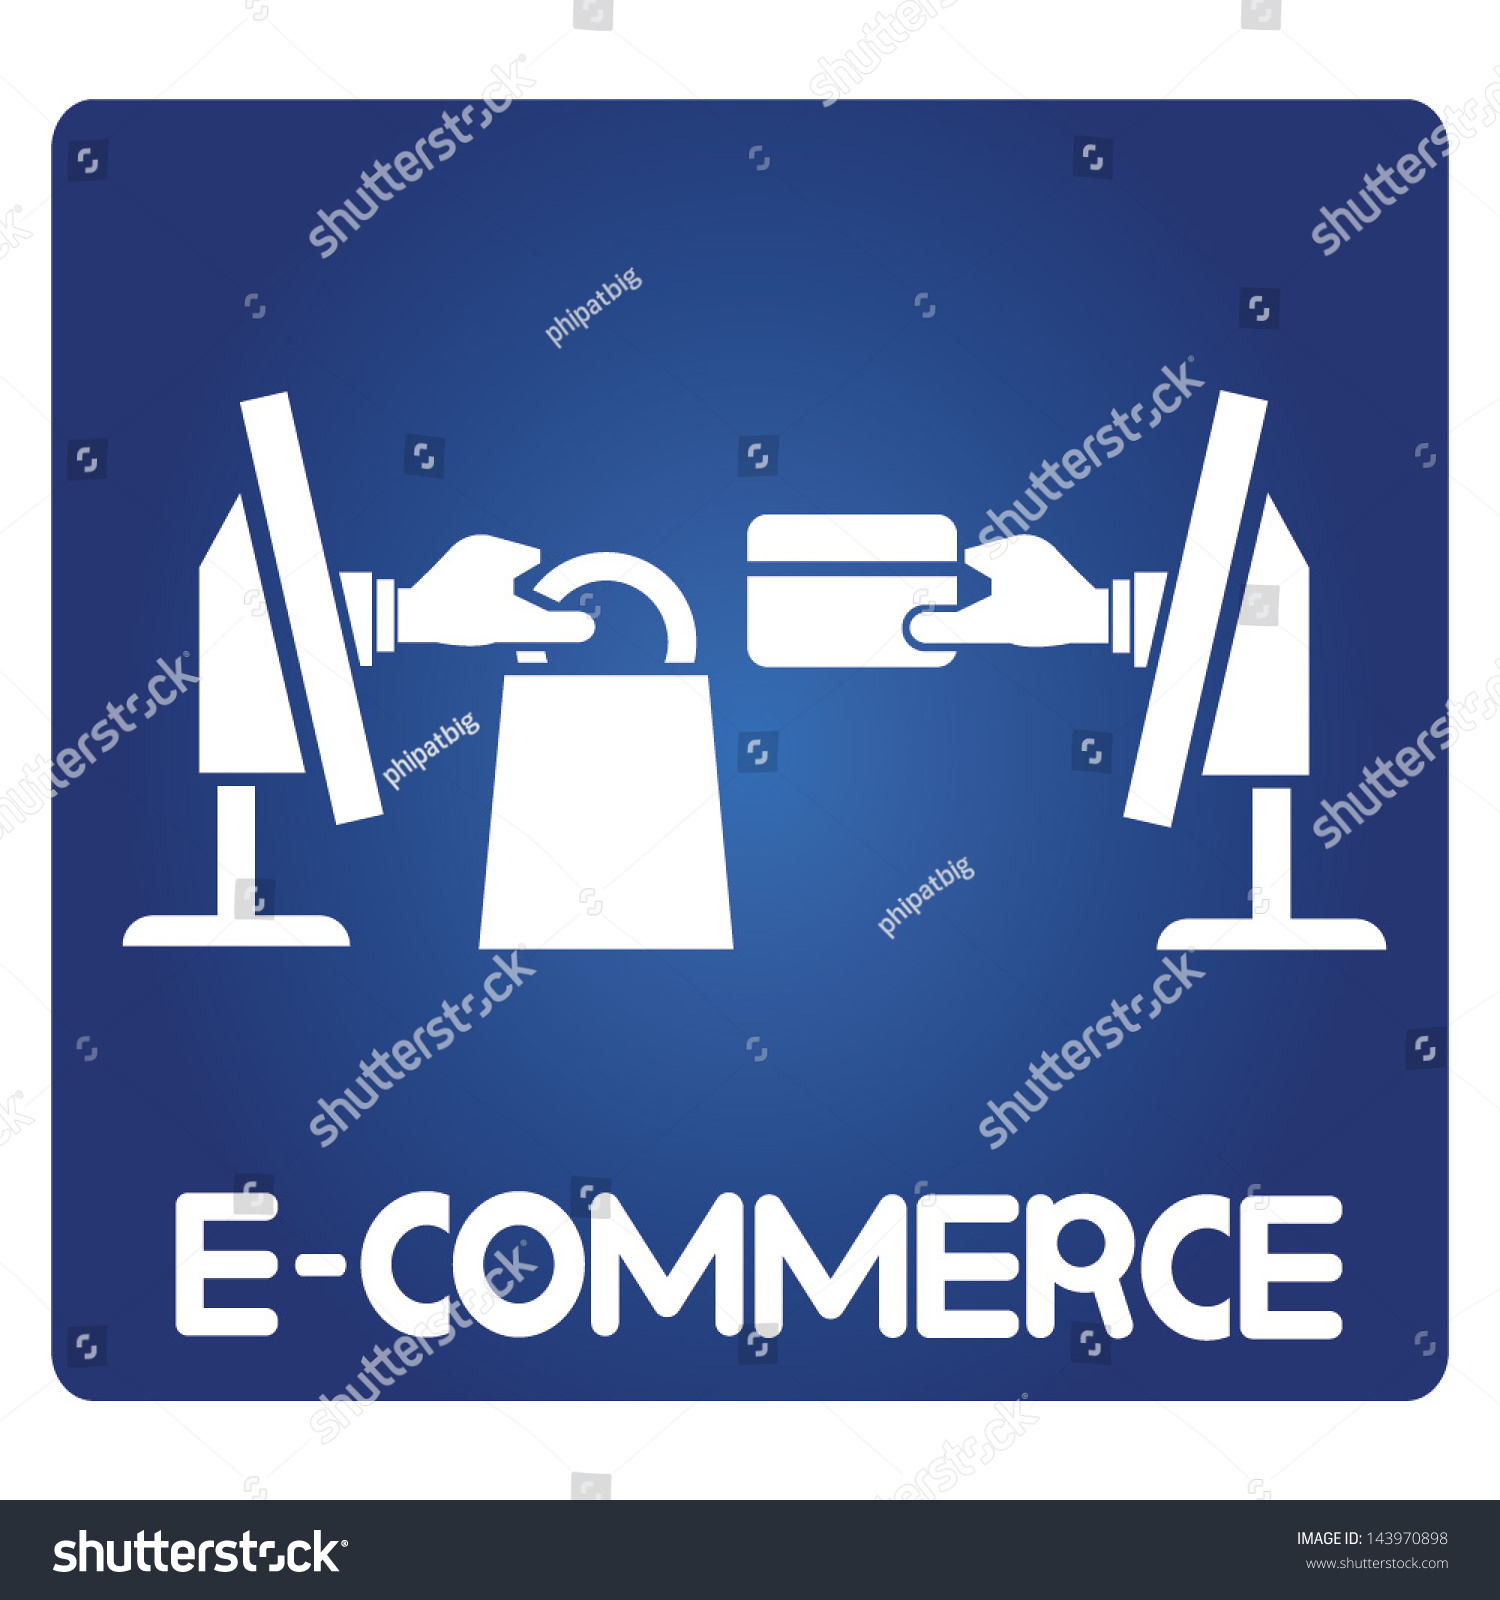 e commerce payment The newest e-commerce payment system is mobile payment, wherein a consumer uses her cell phone to make purchases instead of using cash or credit cards to buy something, the user simply sends a payment request via text message.